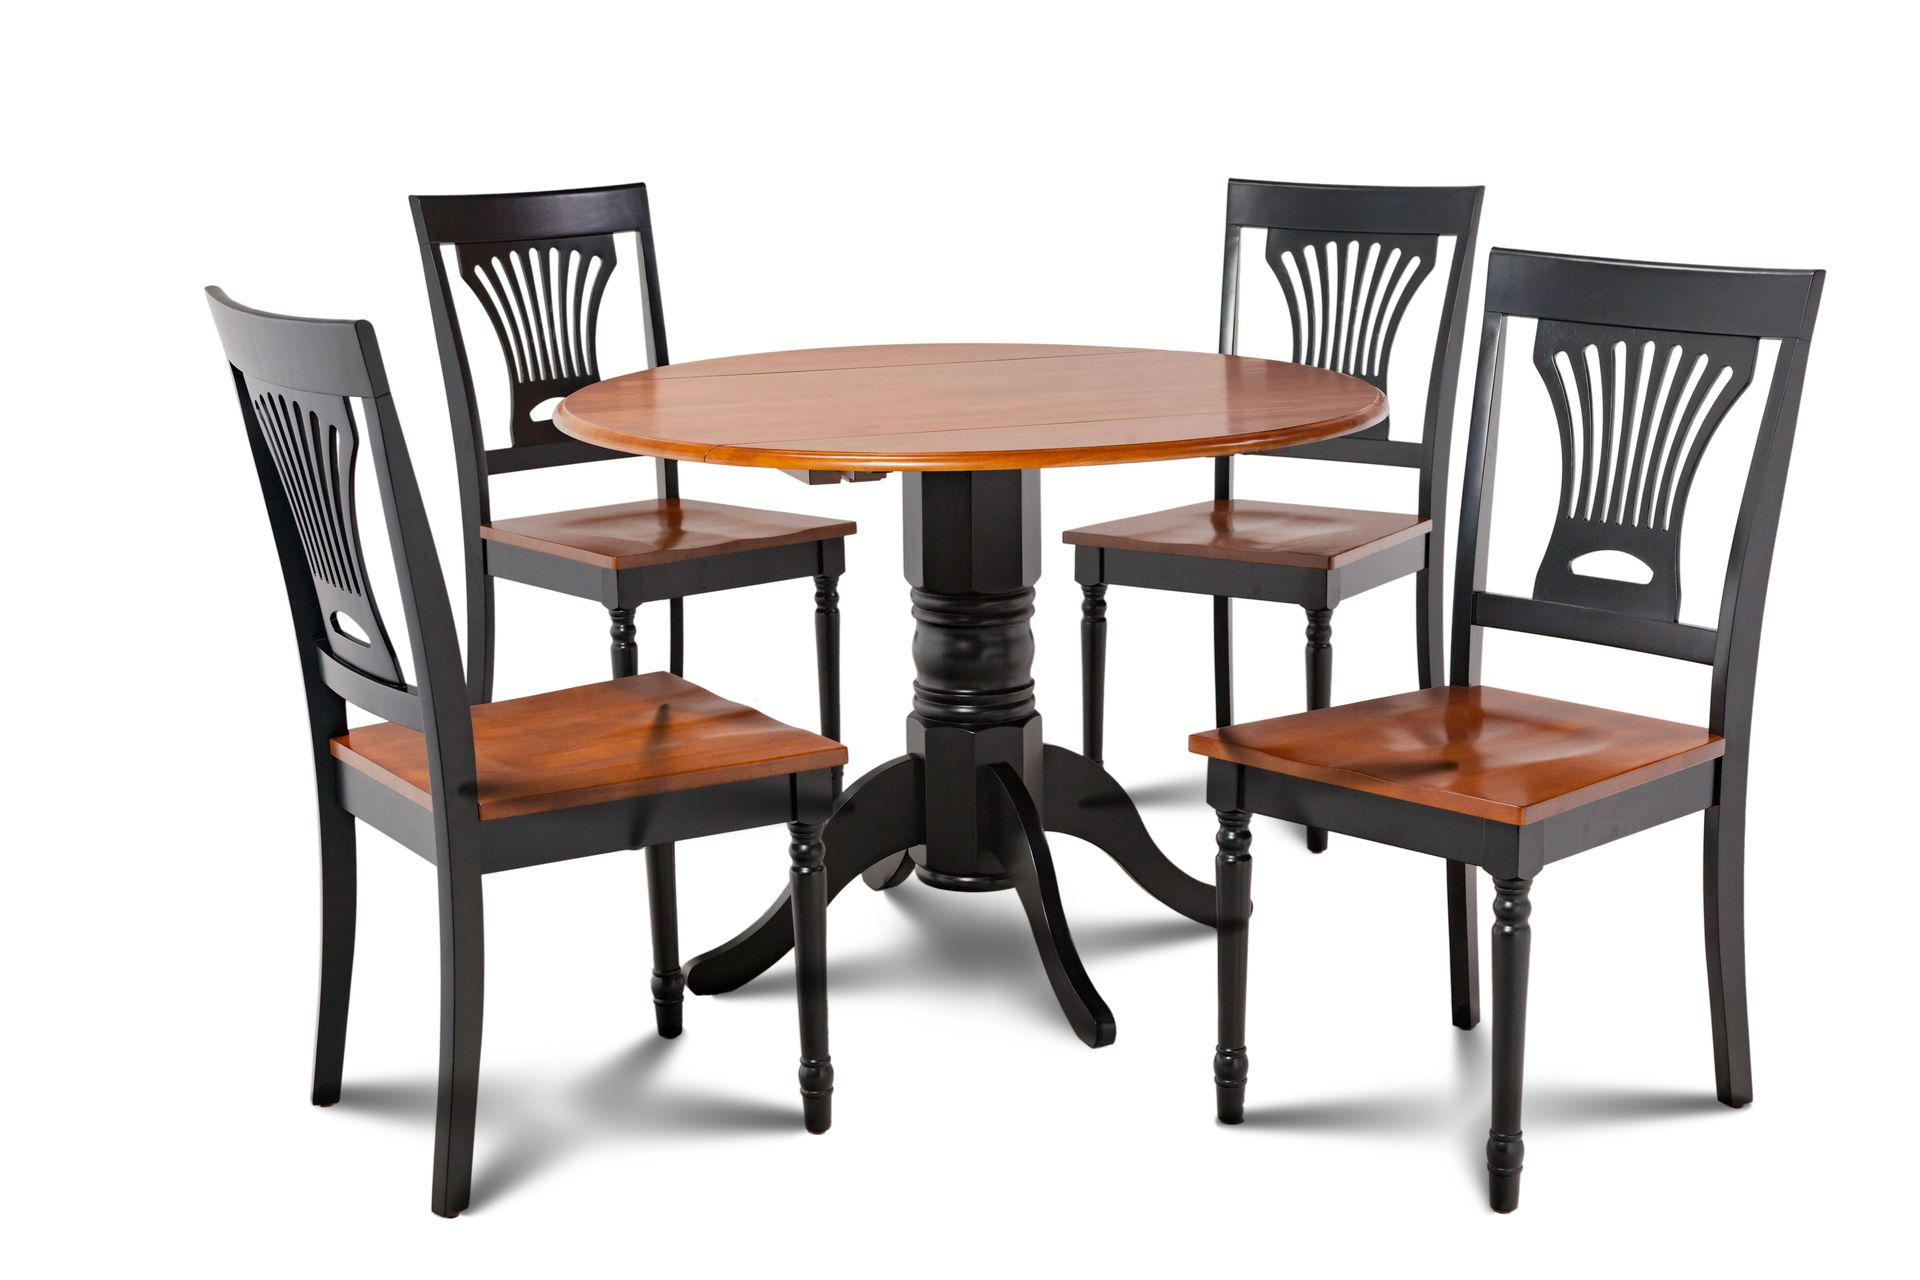 Trithi Furniture Dunes Round Dining Table